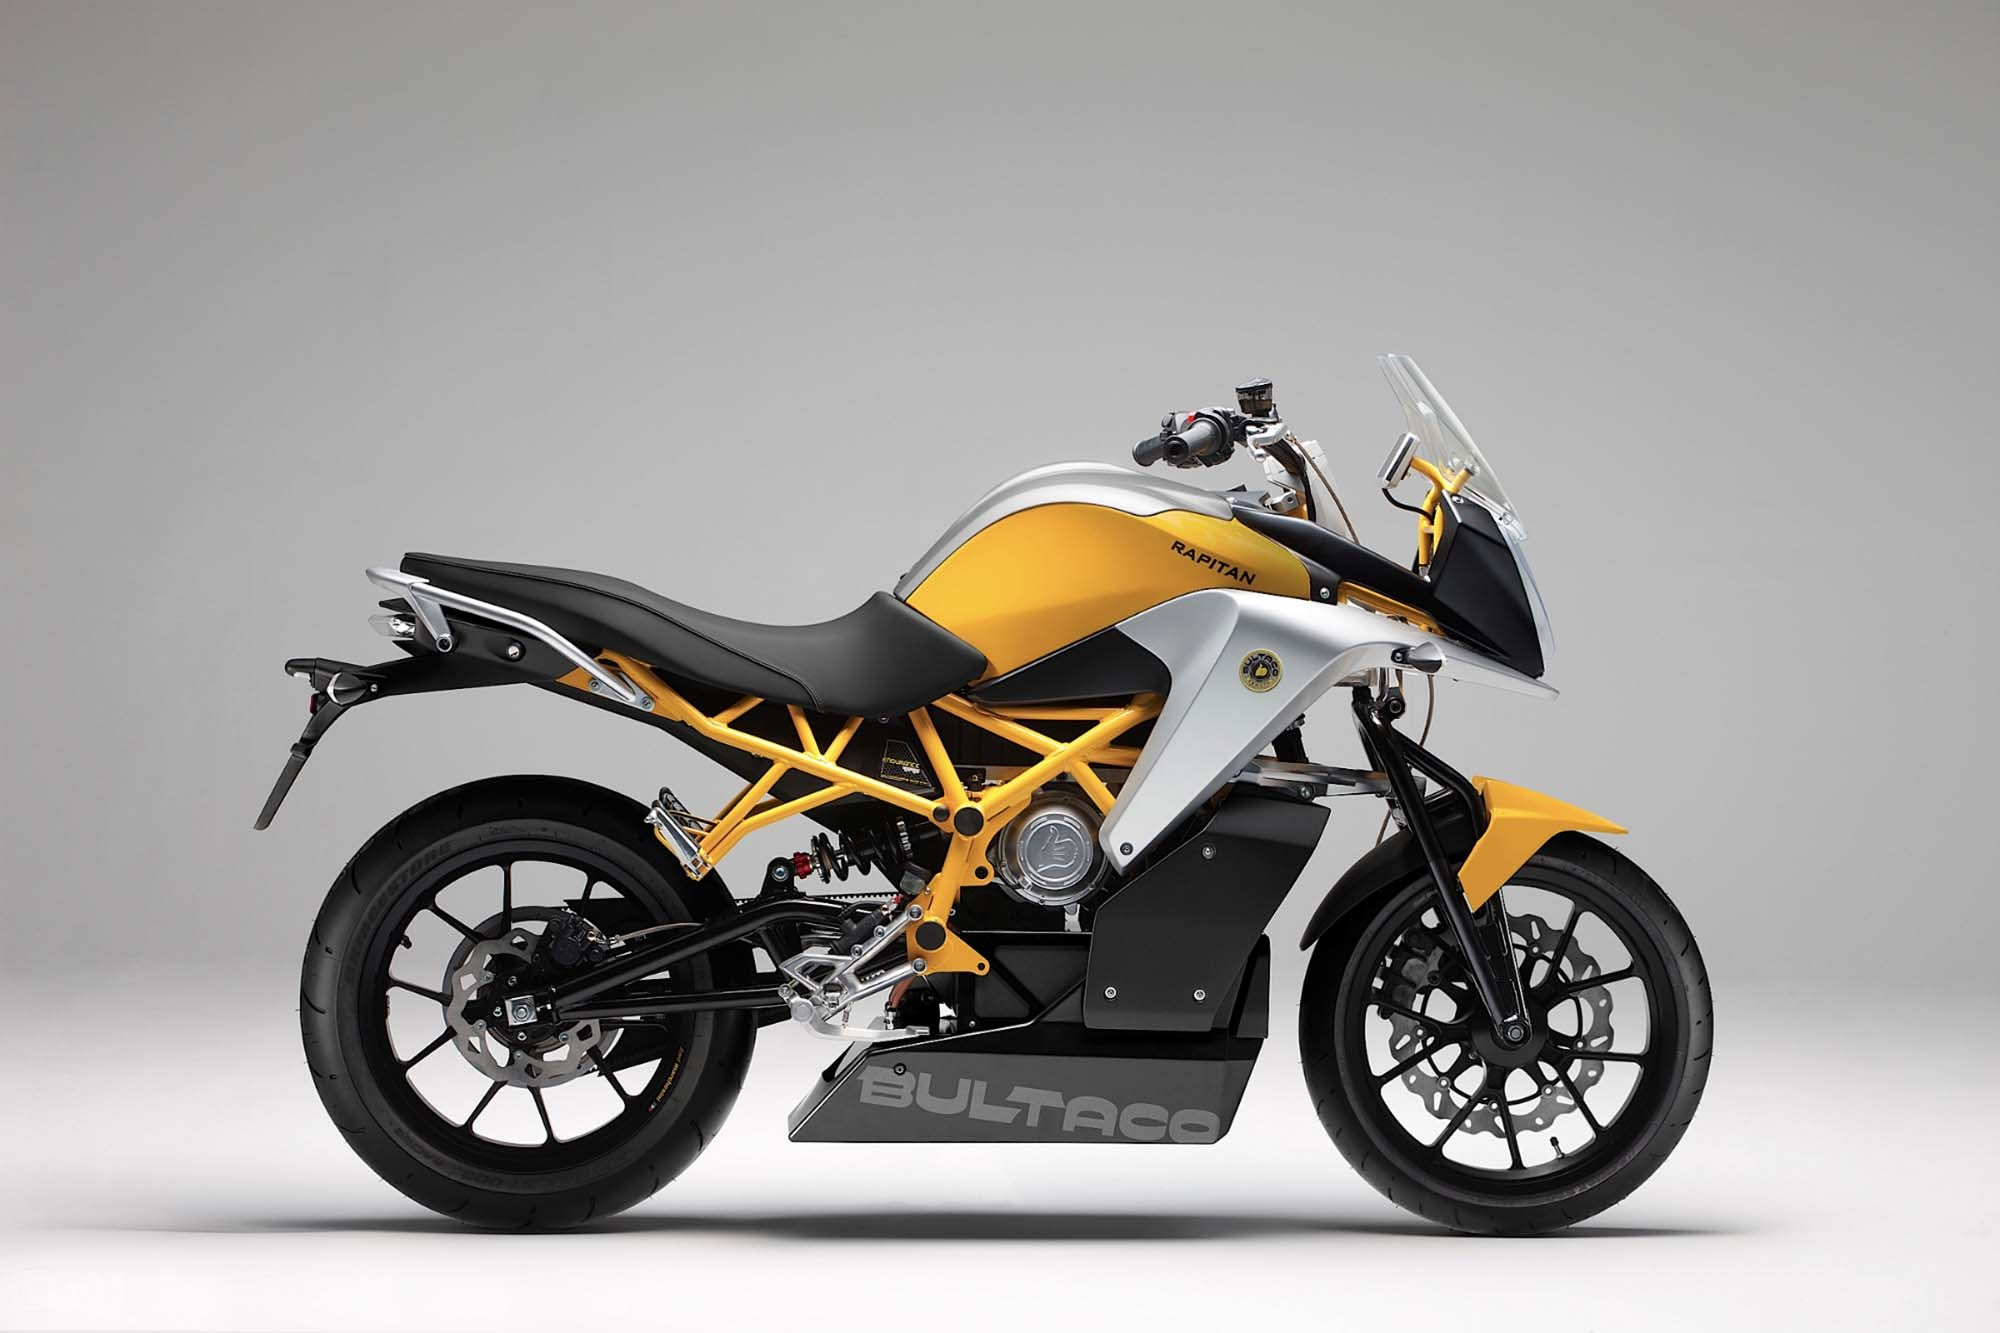 Bultaco Announces Electric Motorcycle Dealers in Spain, Expansion